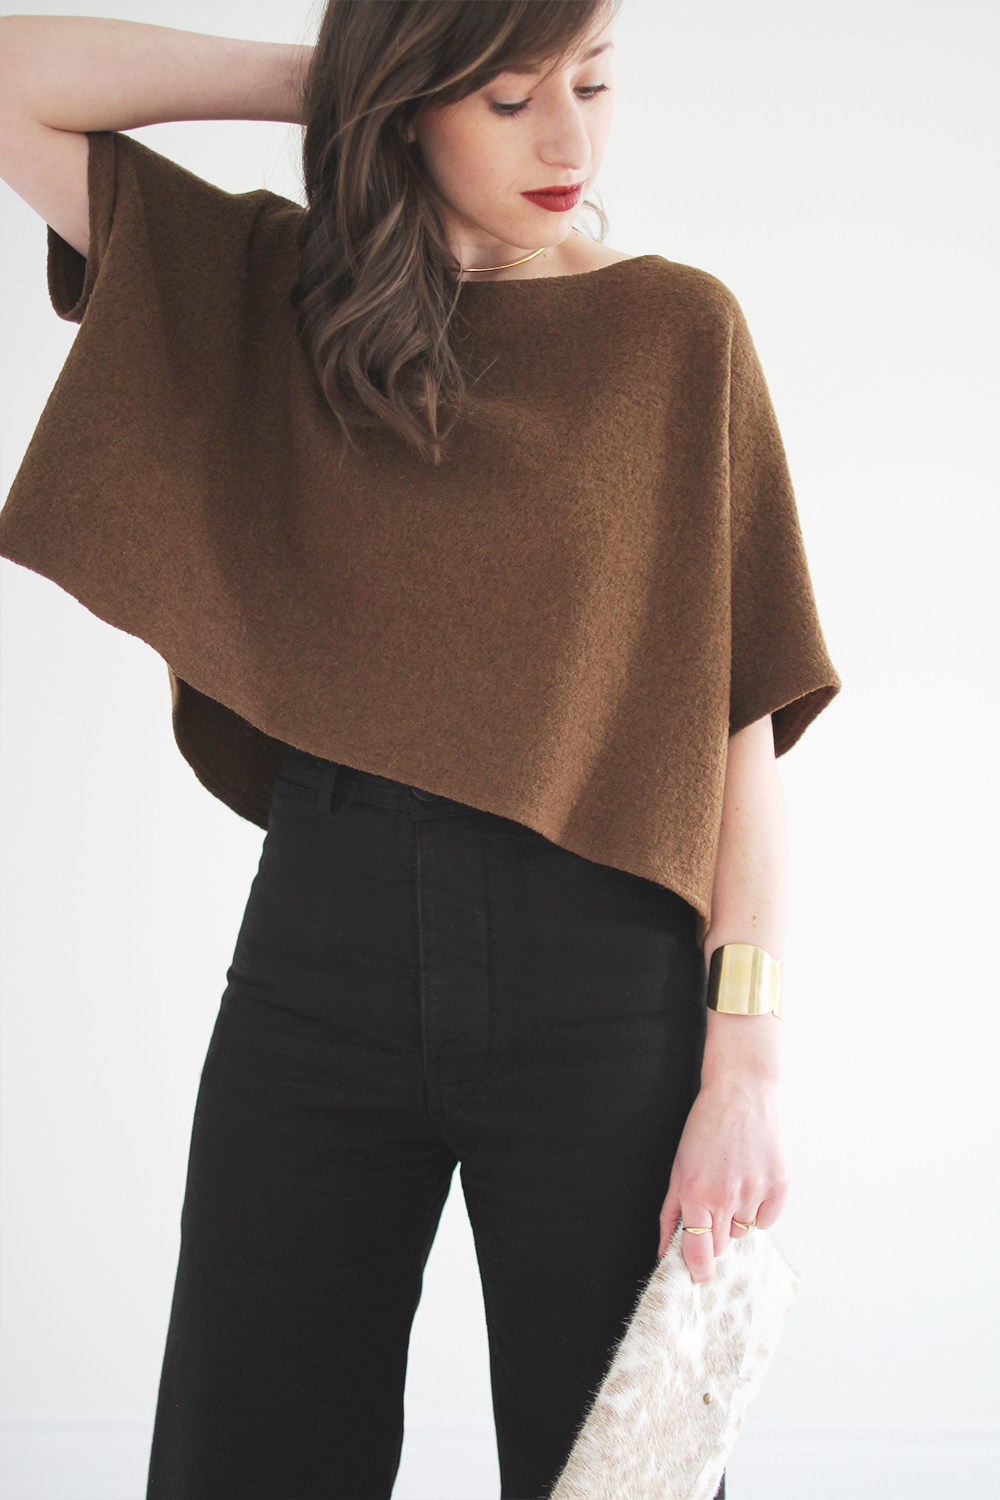 Fall 2017 Minimalist Essential #3: Cropped Sweater